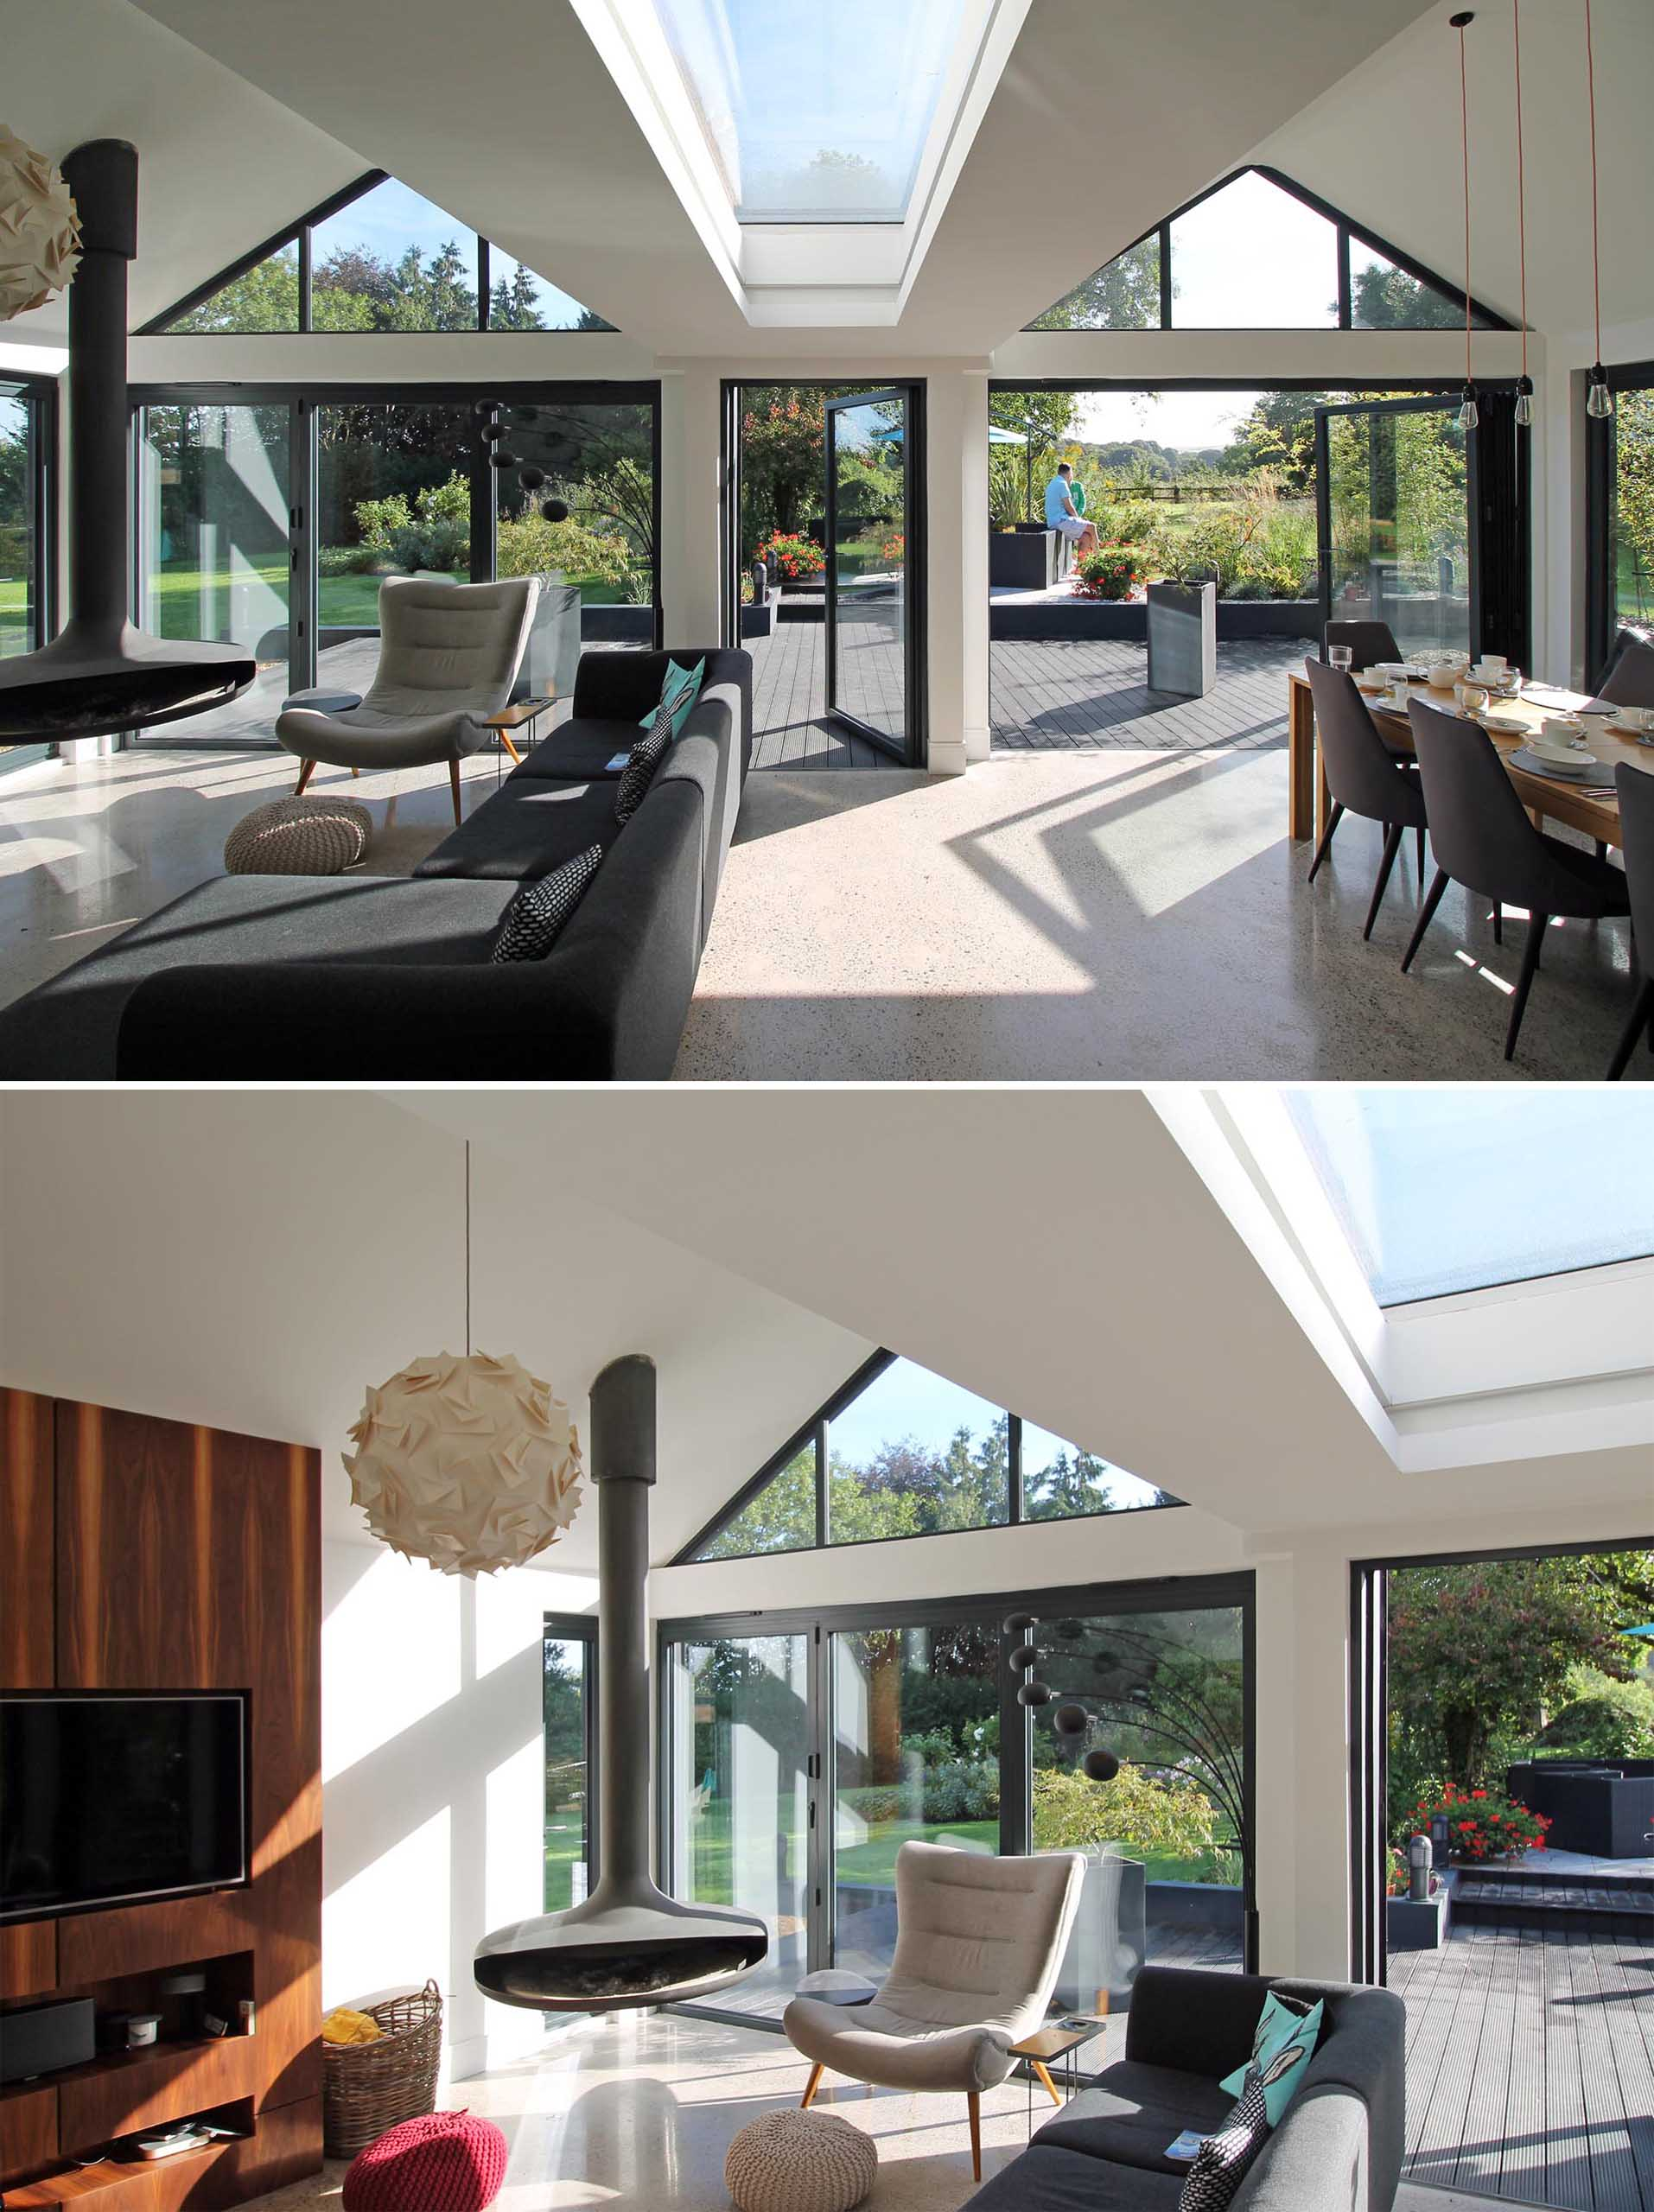 Inside this modern extension, the pitched roofs are open and each roof defines a zone in the open plan space below, like the living room and dining area.